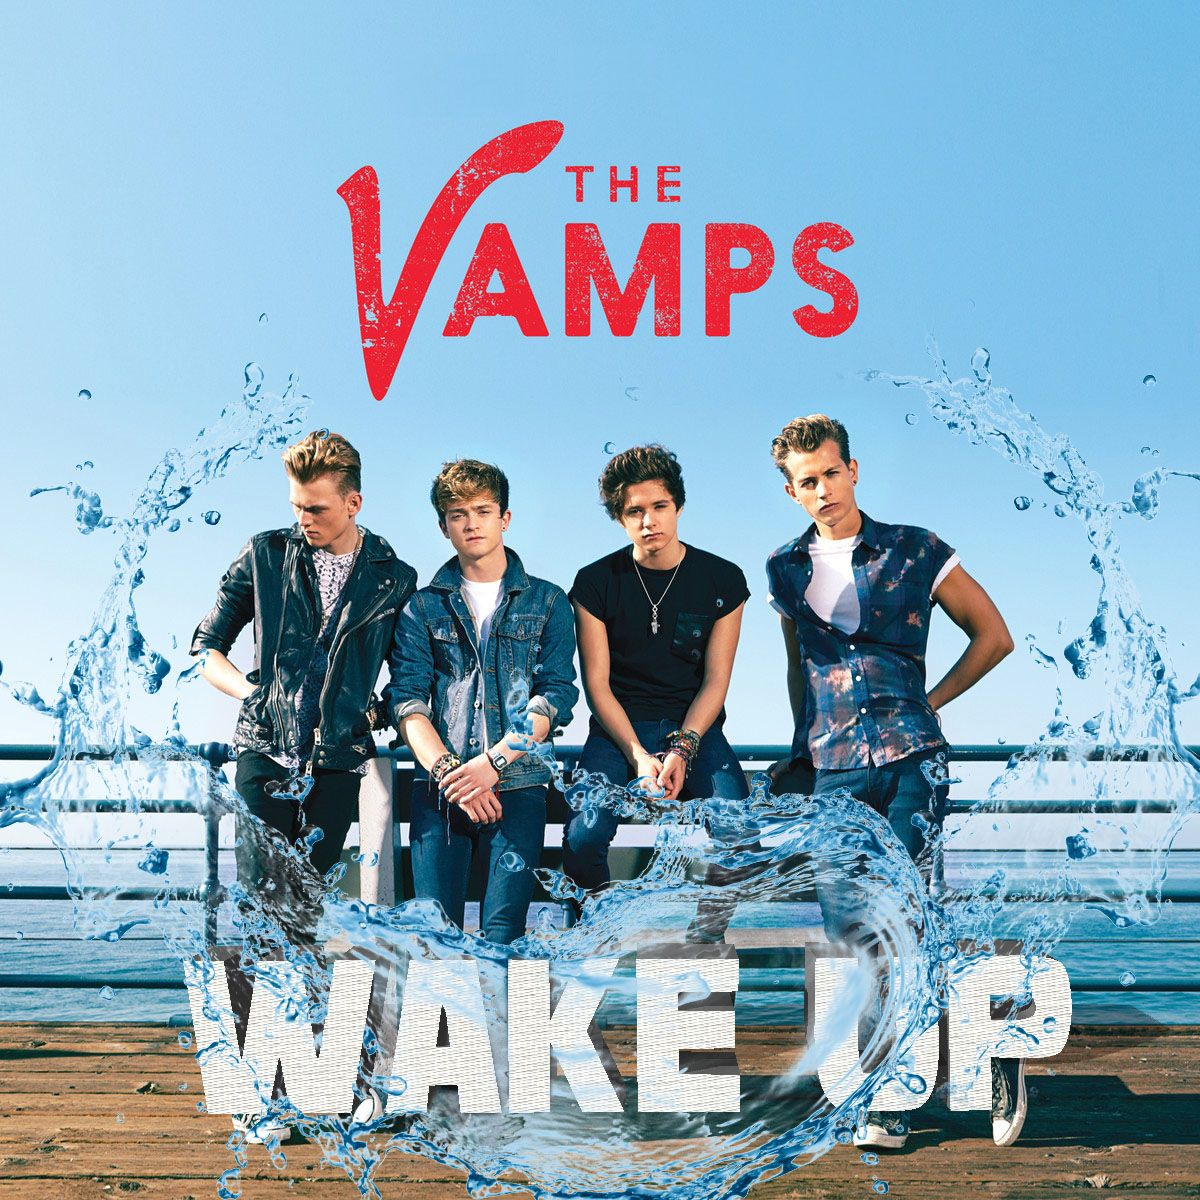 The Vamps Poster Wake Up FREE P+P CHOOSE YOUR SIZE Meet the Vamps Hot Boyband